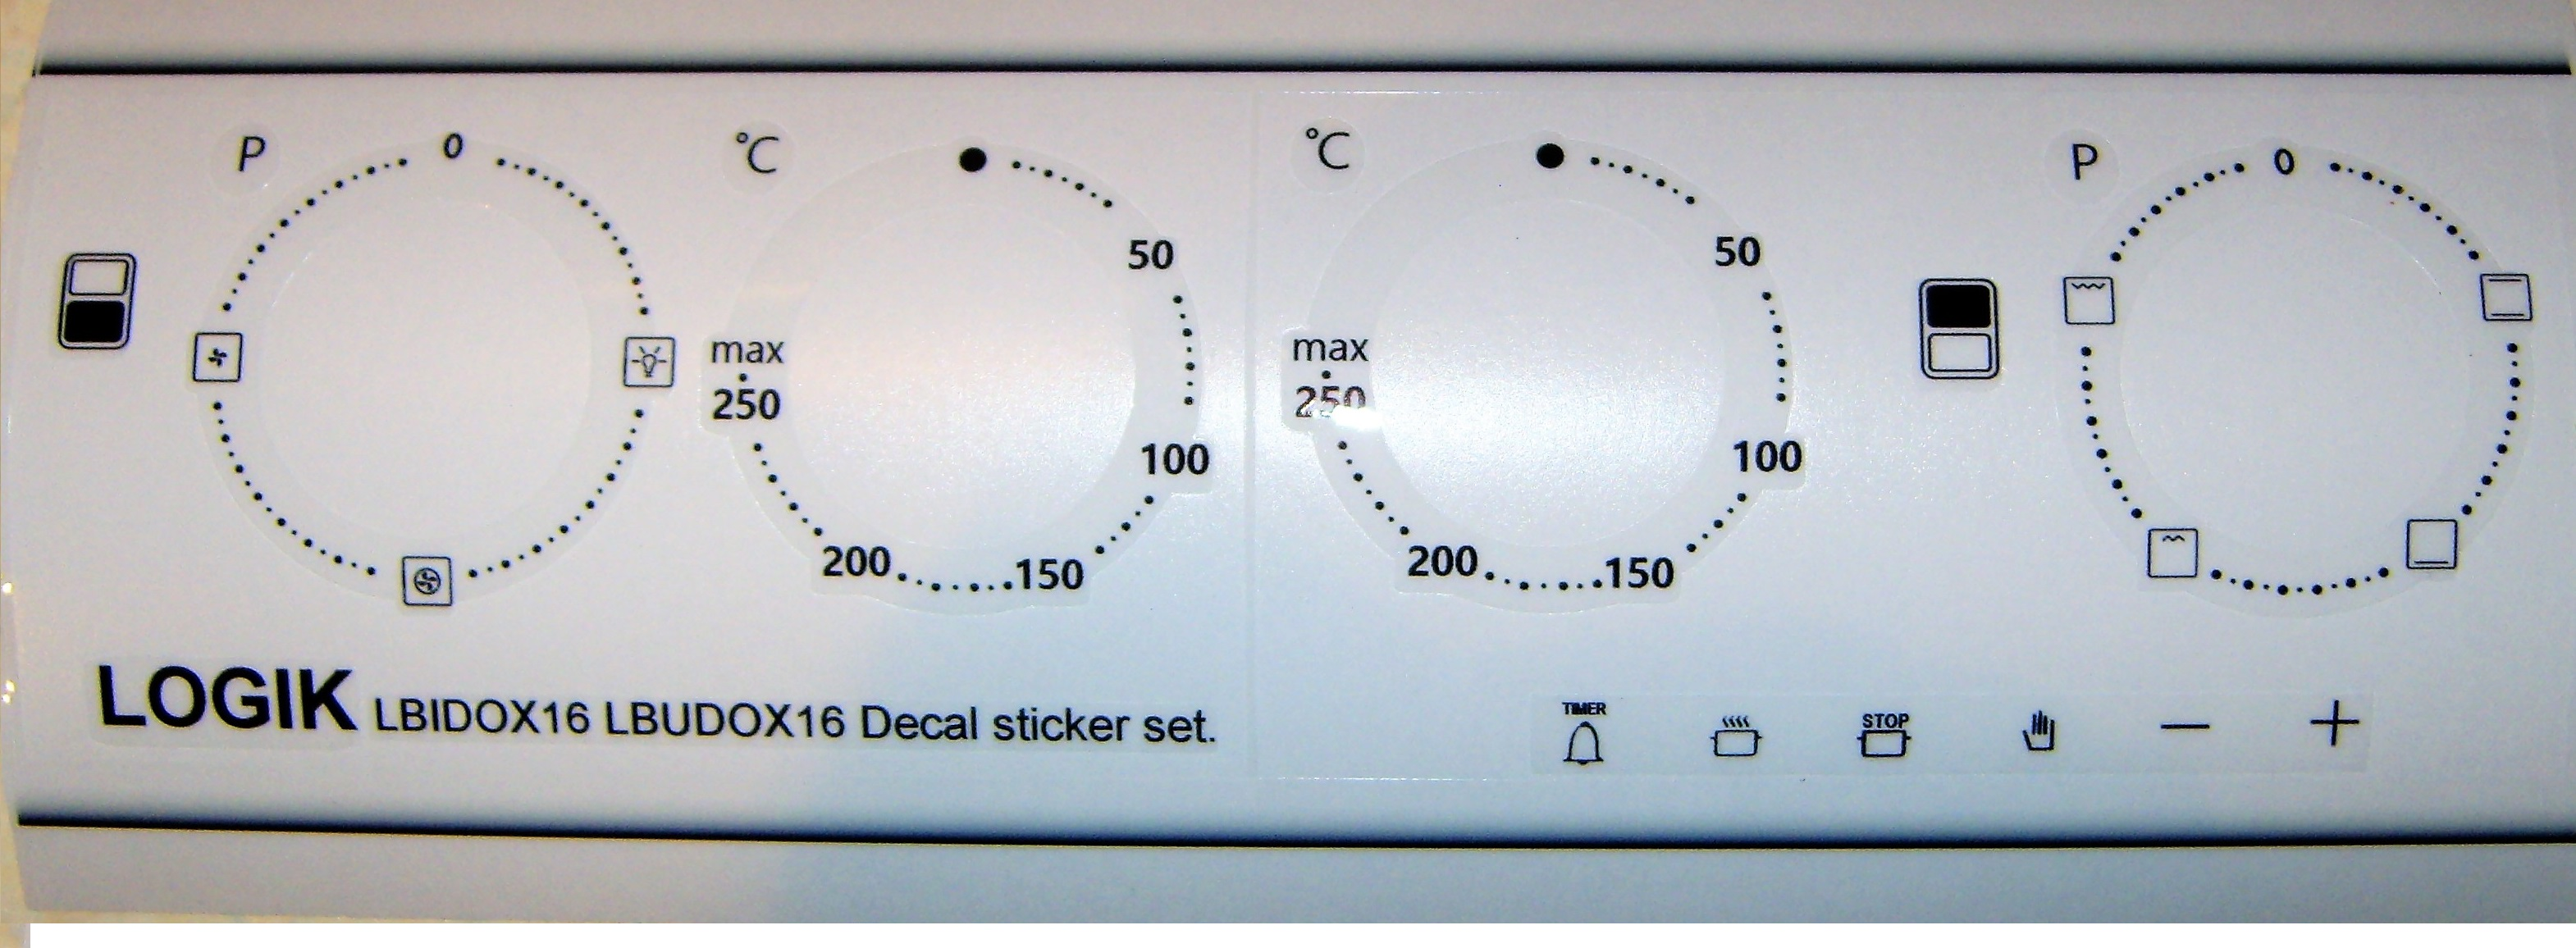 Logik LBIDOX16, LBUDOX16 Decal sticker set, may fit others.